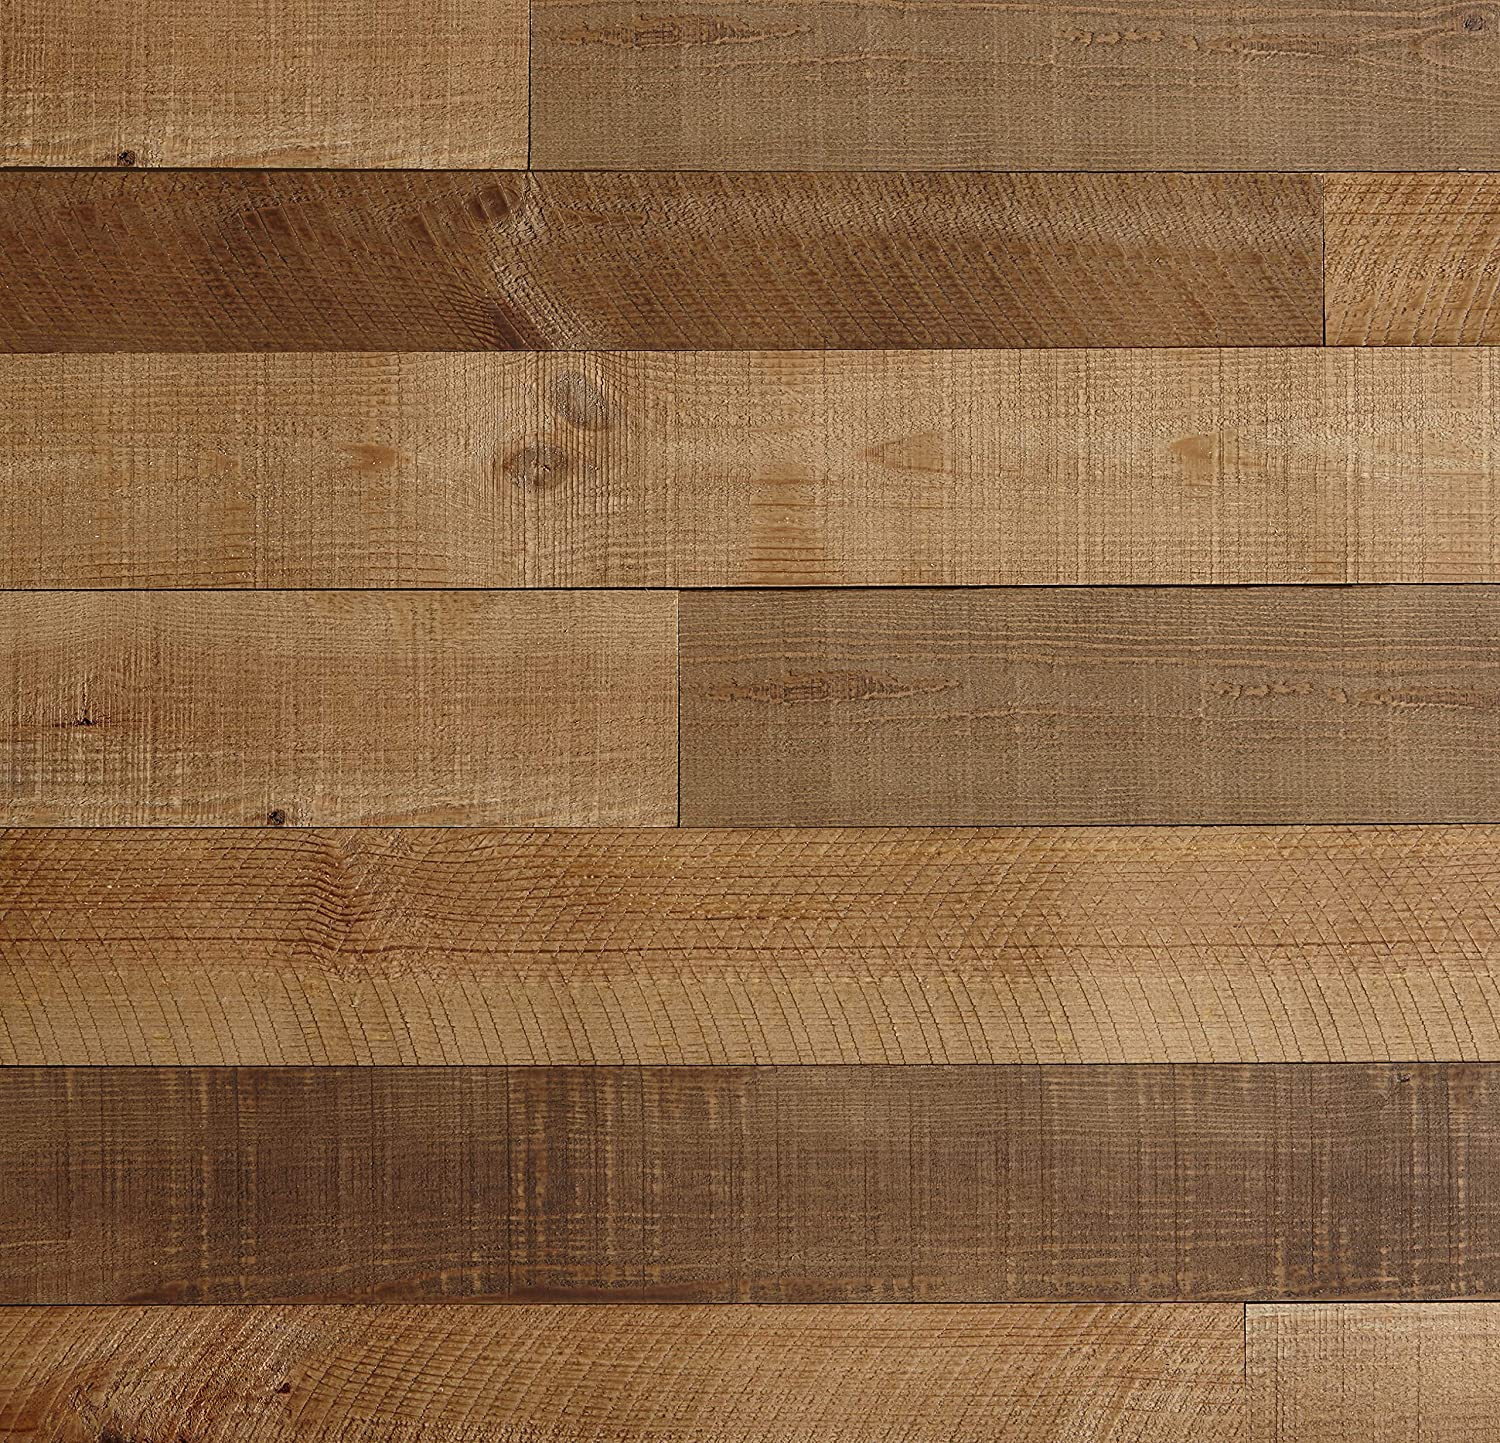 Timberwall - Barnwood Collection Heritage Brown - Wood Wall Panel - Solid Wood Planks - Easy Peel and Stick Application - 9.7 Sq Ft